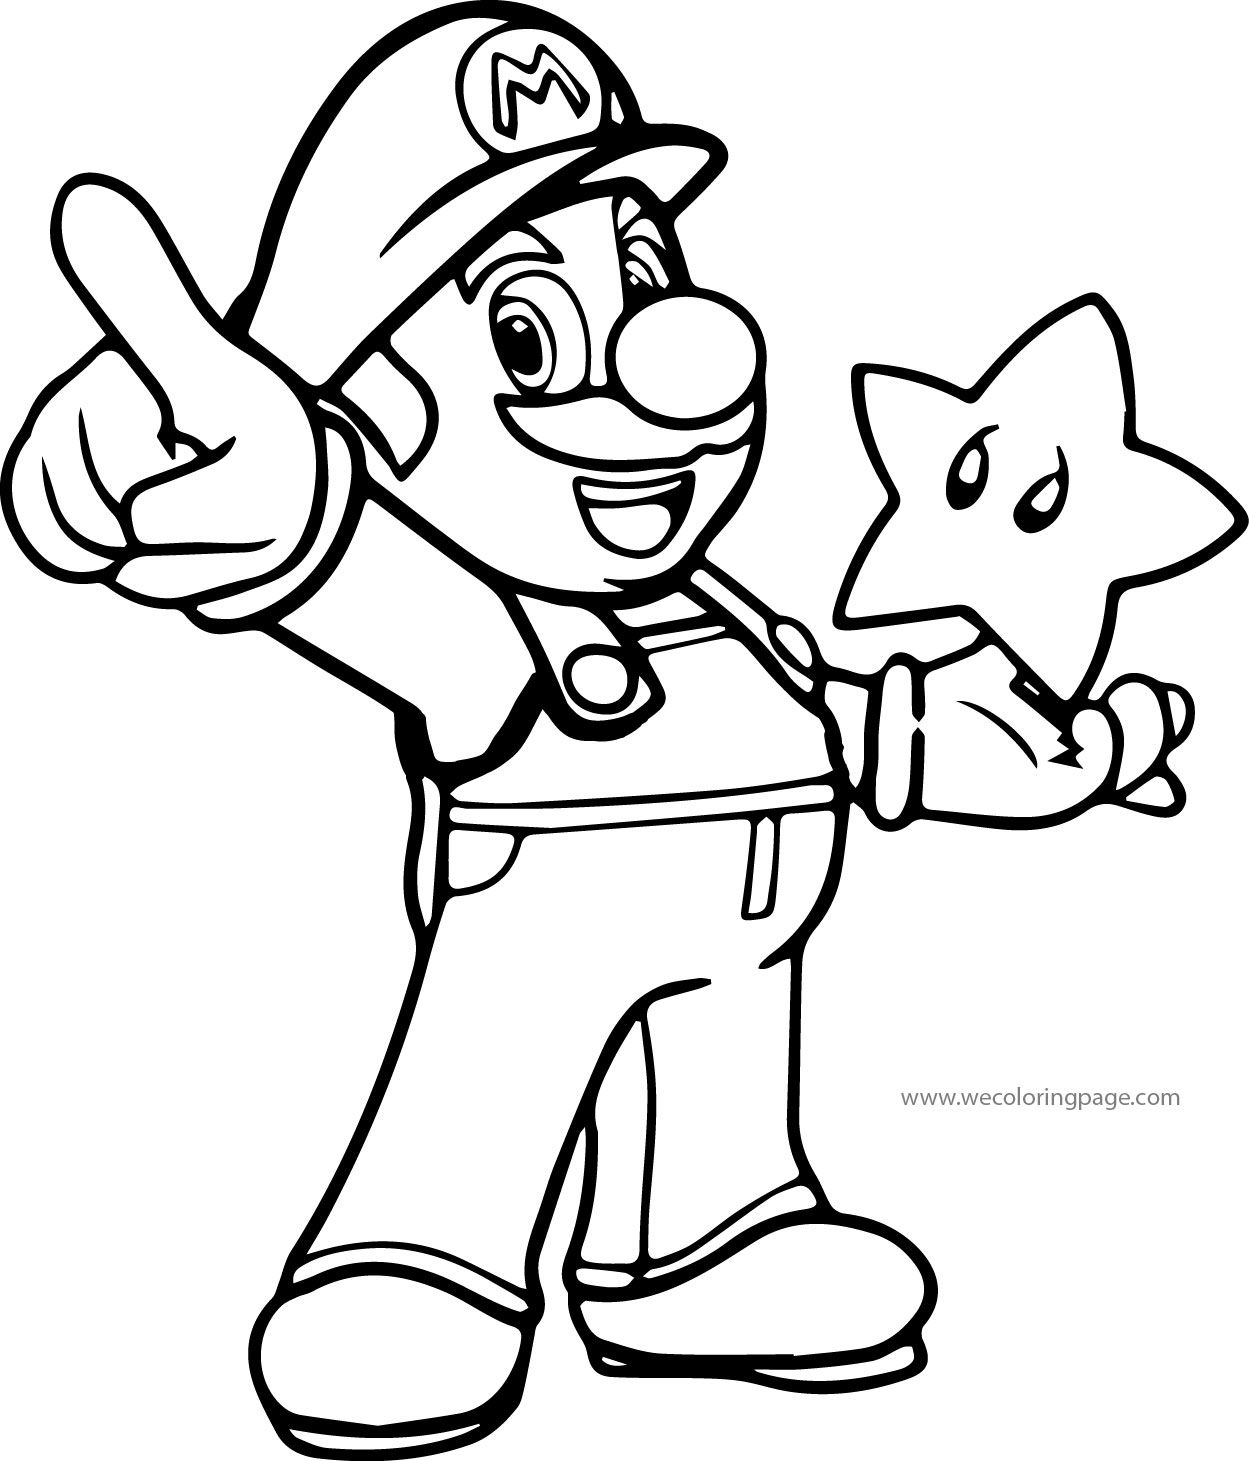 super mario coloring page wecoloringpage mario coloring pages Super Mario World awesome super mario coloring page